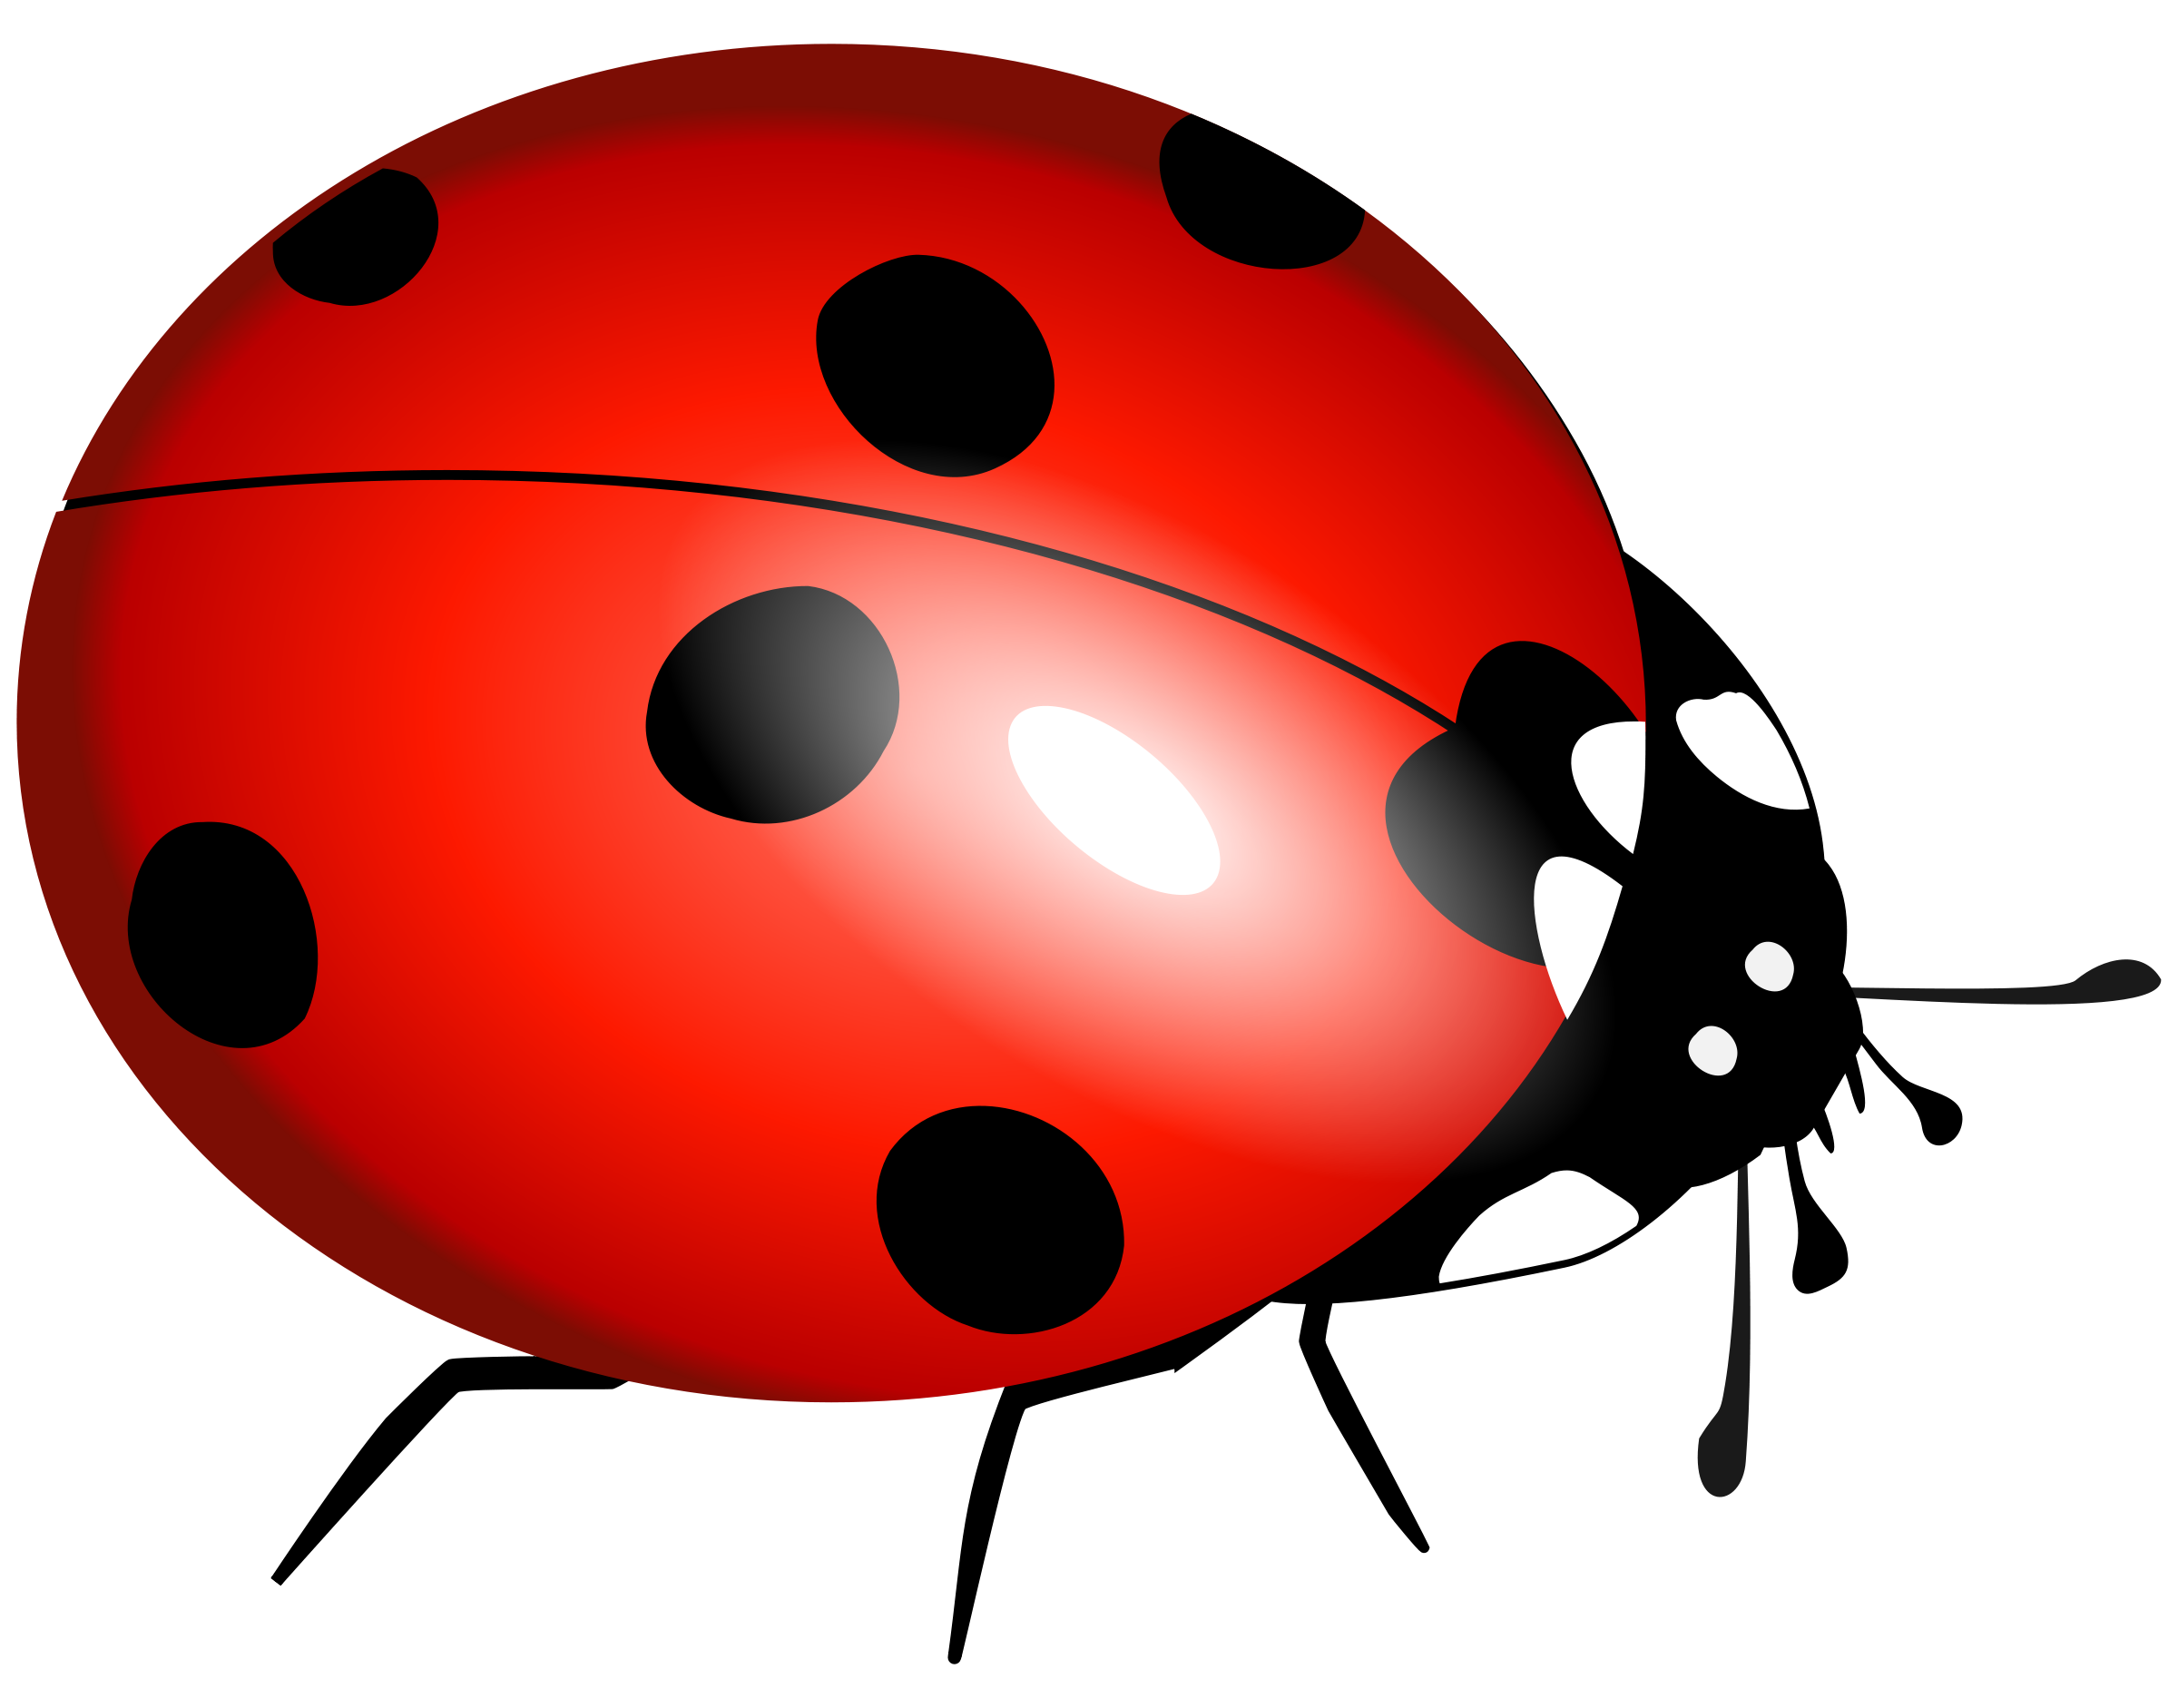 2400x1882 Ladybug Download Lady Bug Clipart Clipartmonk Free Clip Art Images